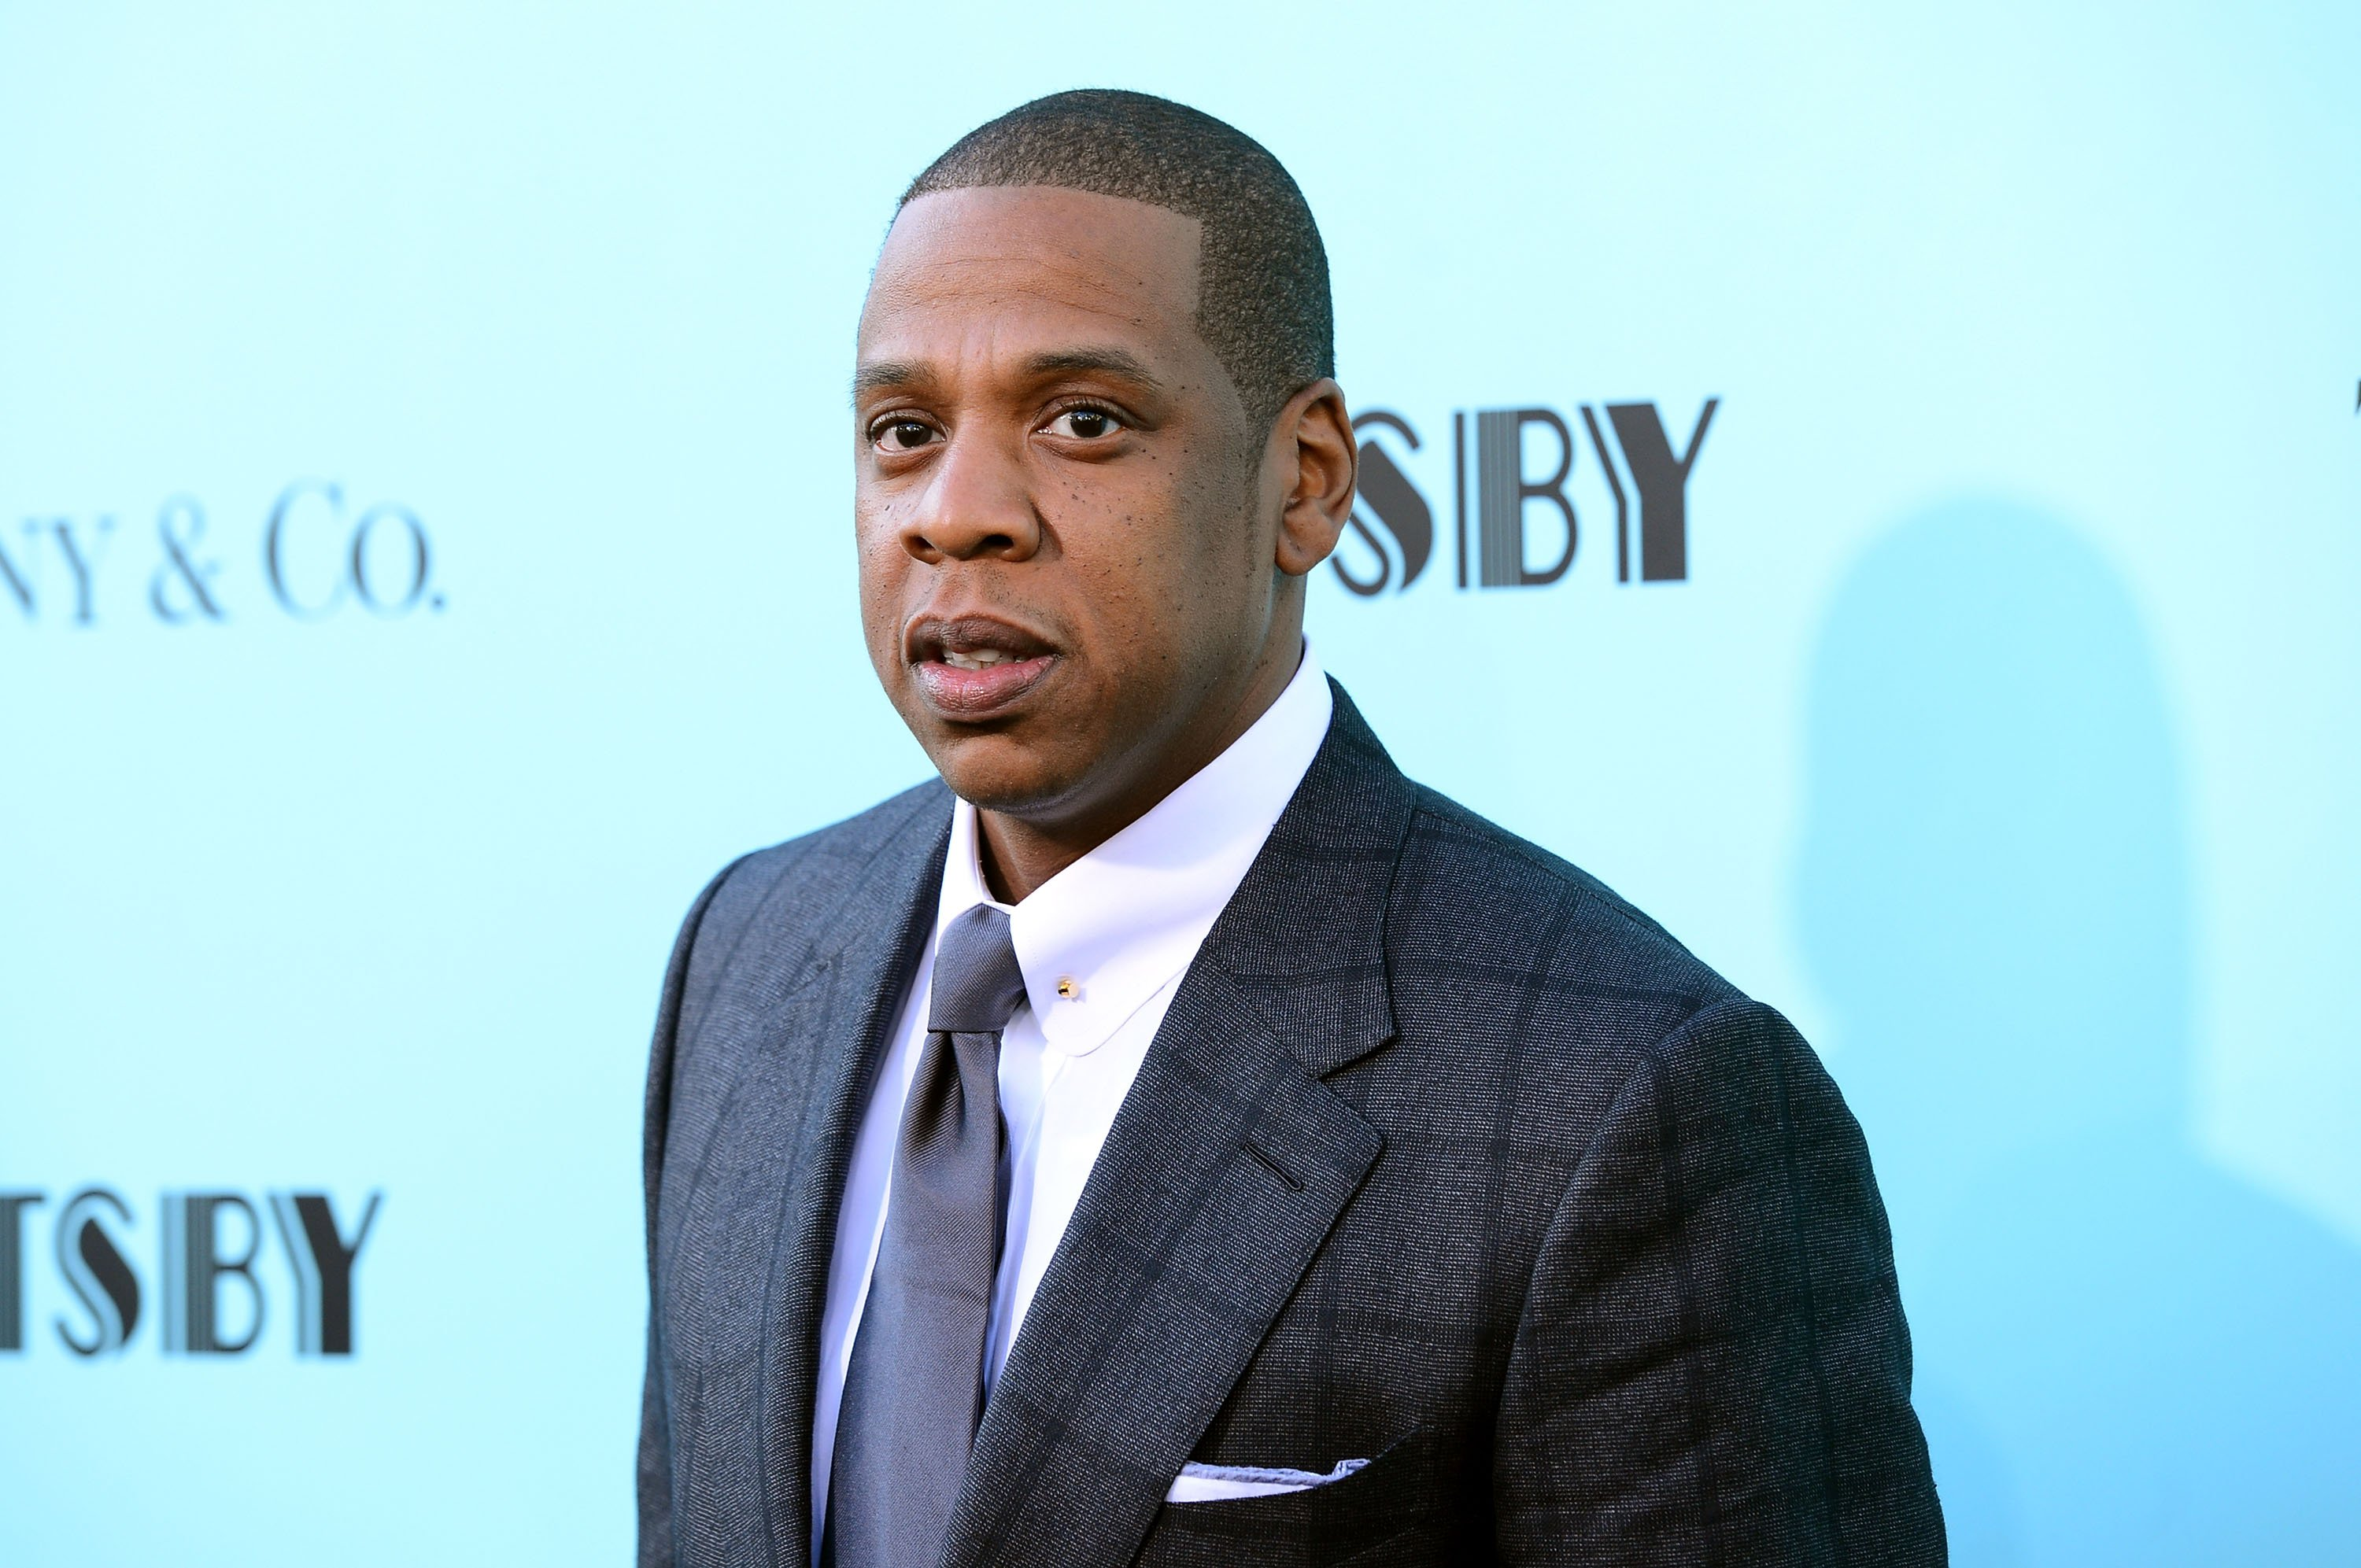 Image Credits: Getty Images | Jay Z